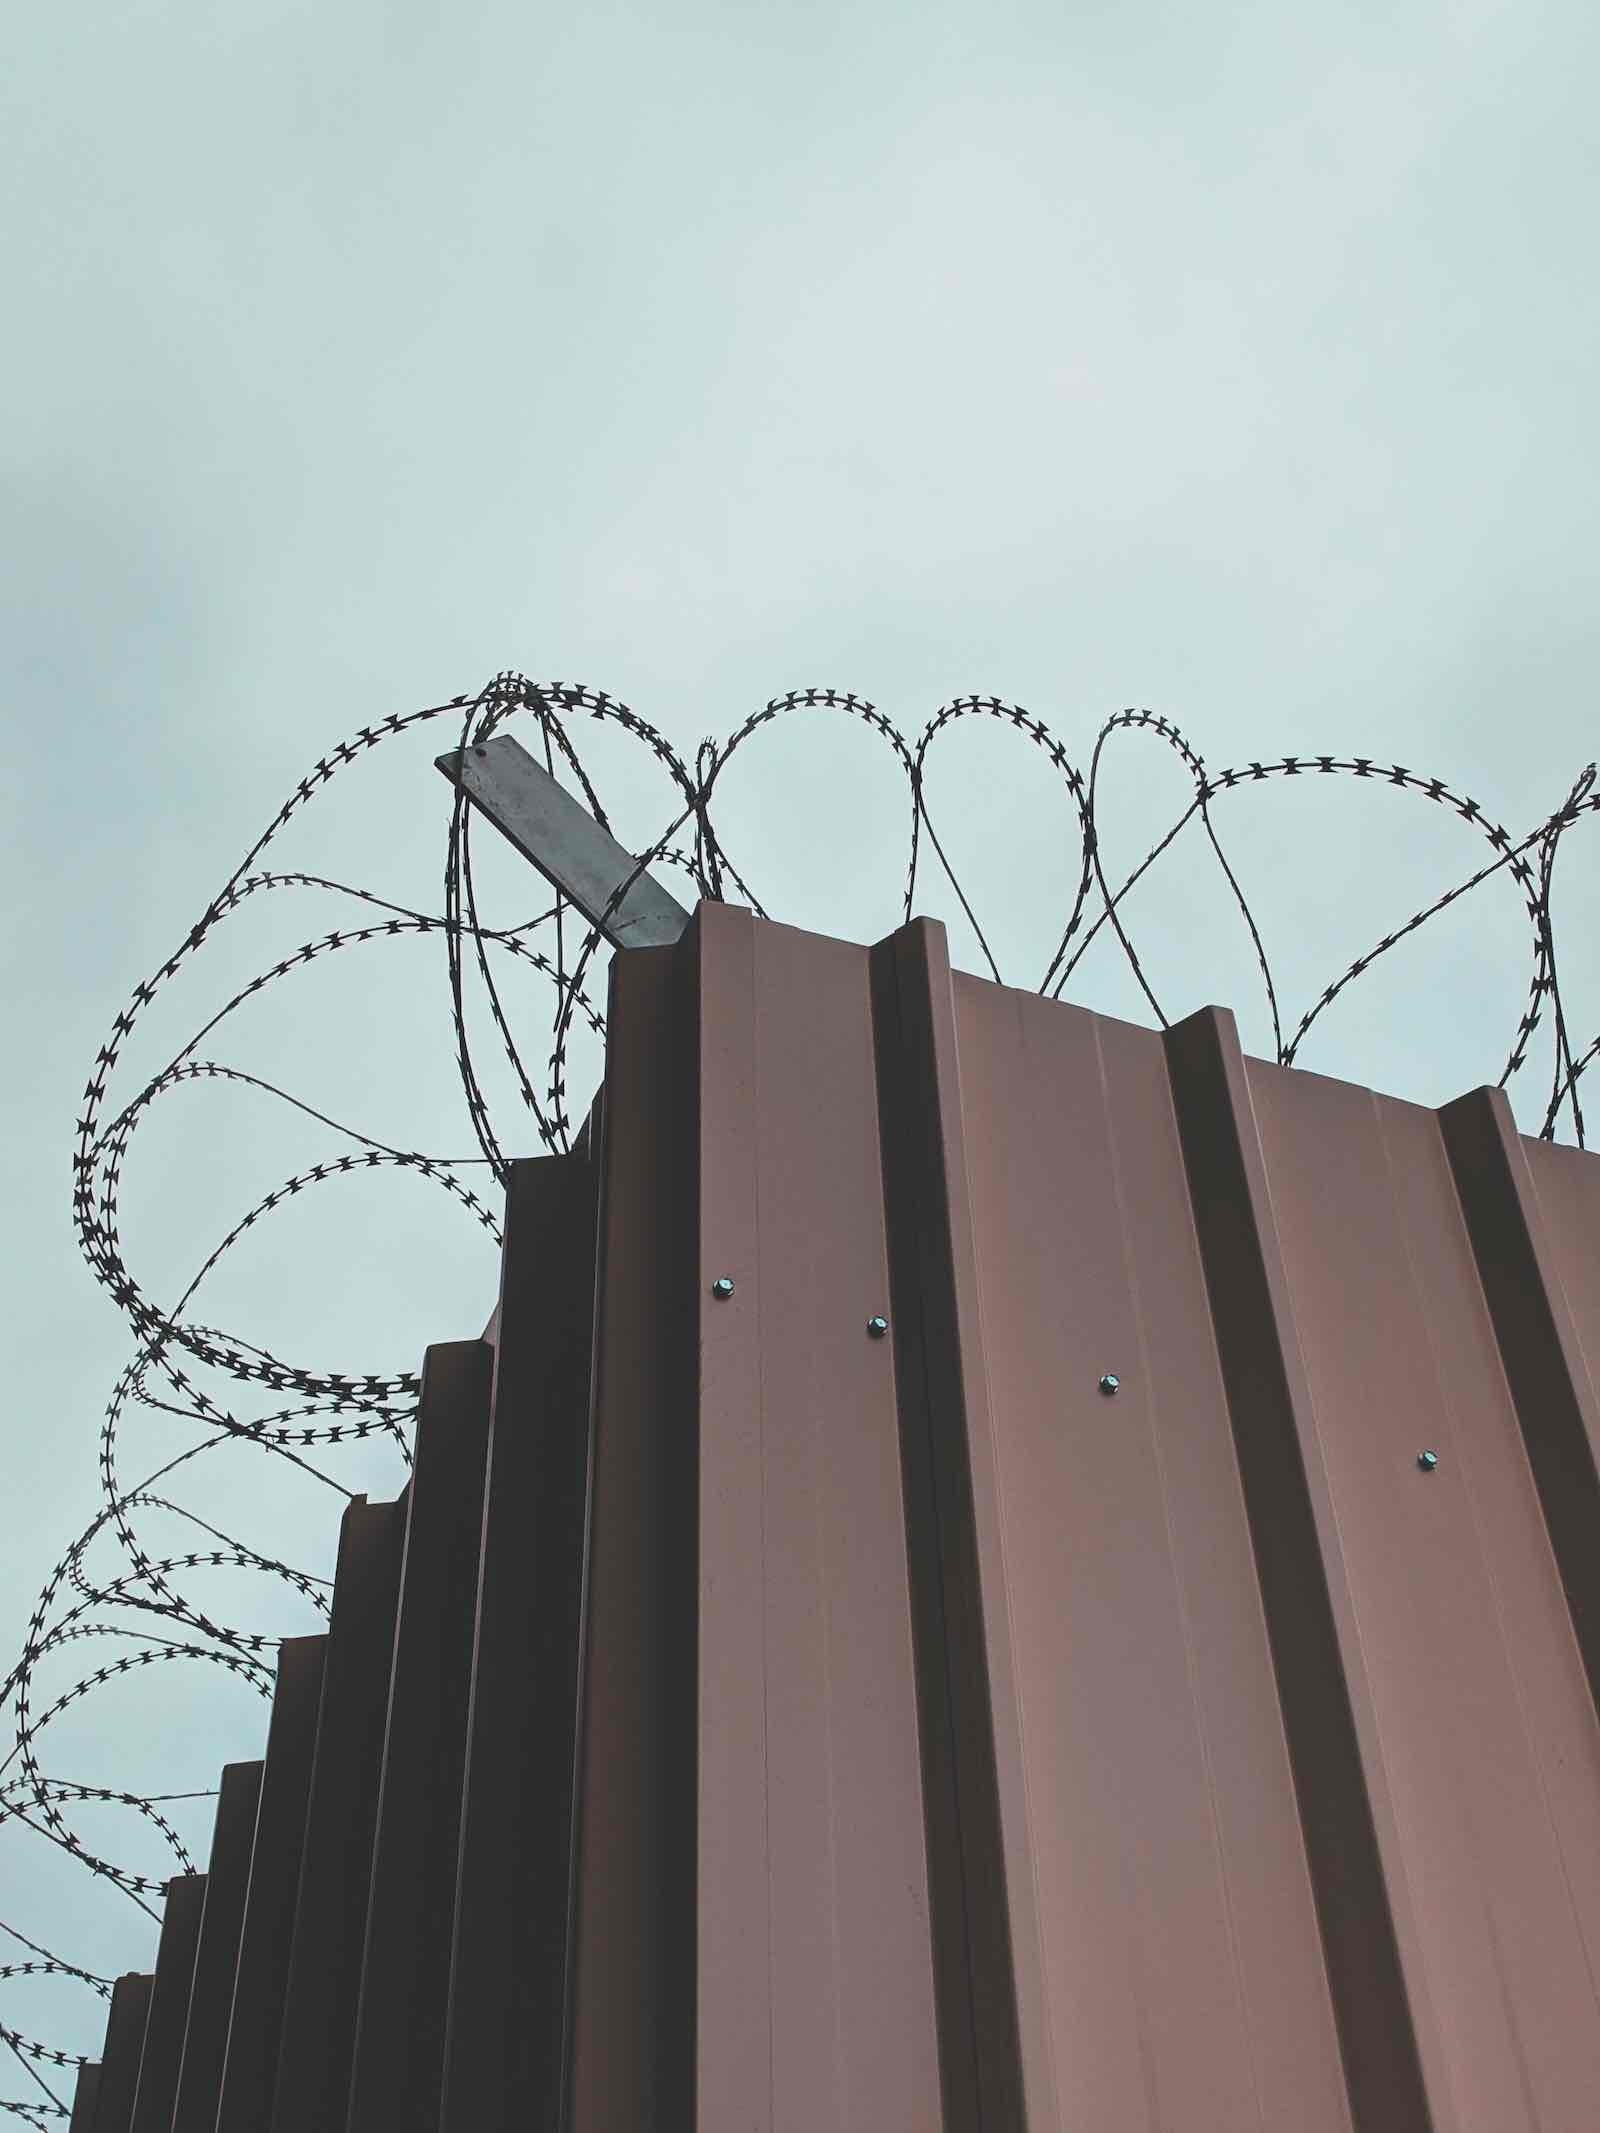 Image of barbed wire above a metal wall